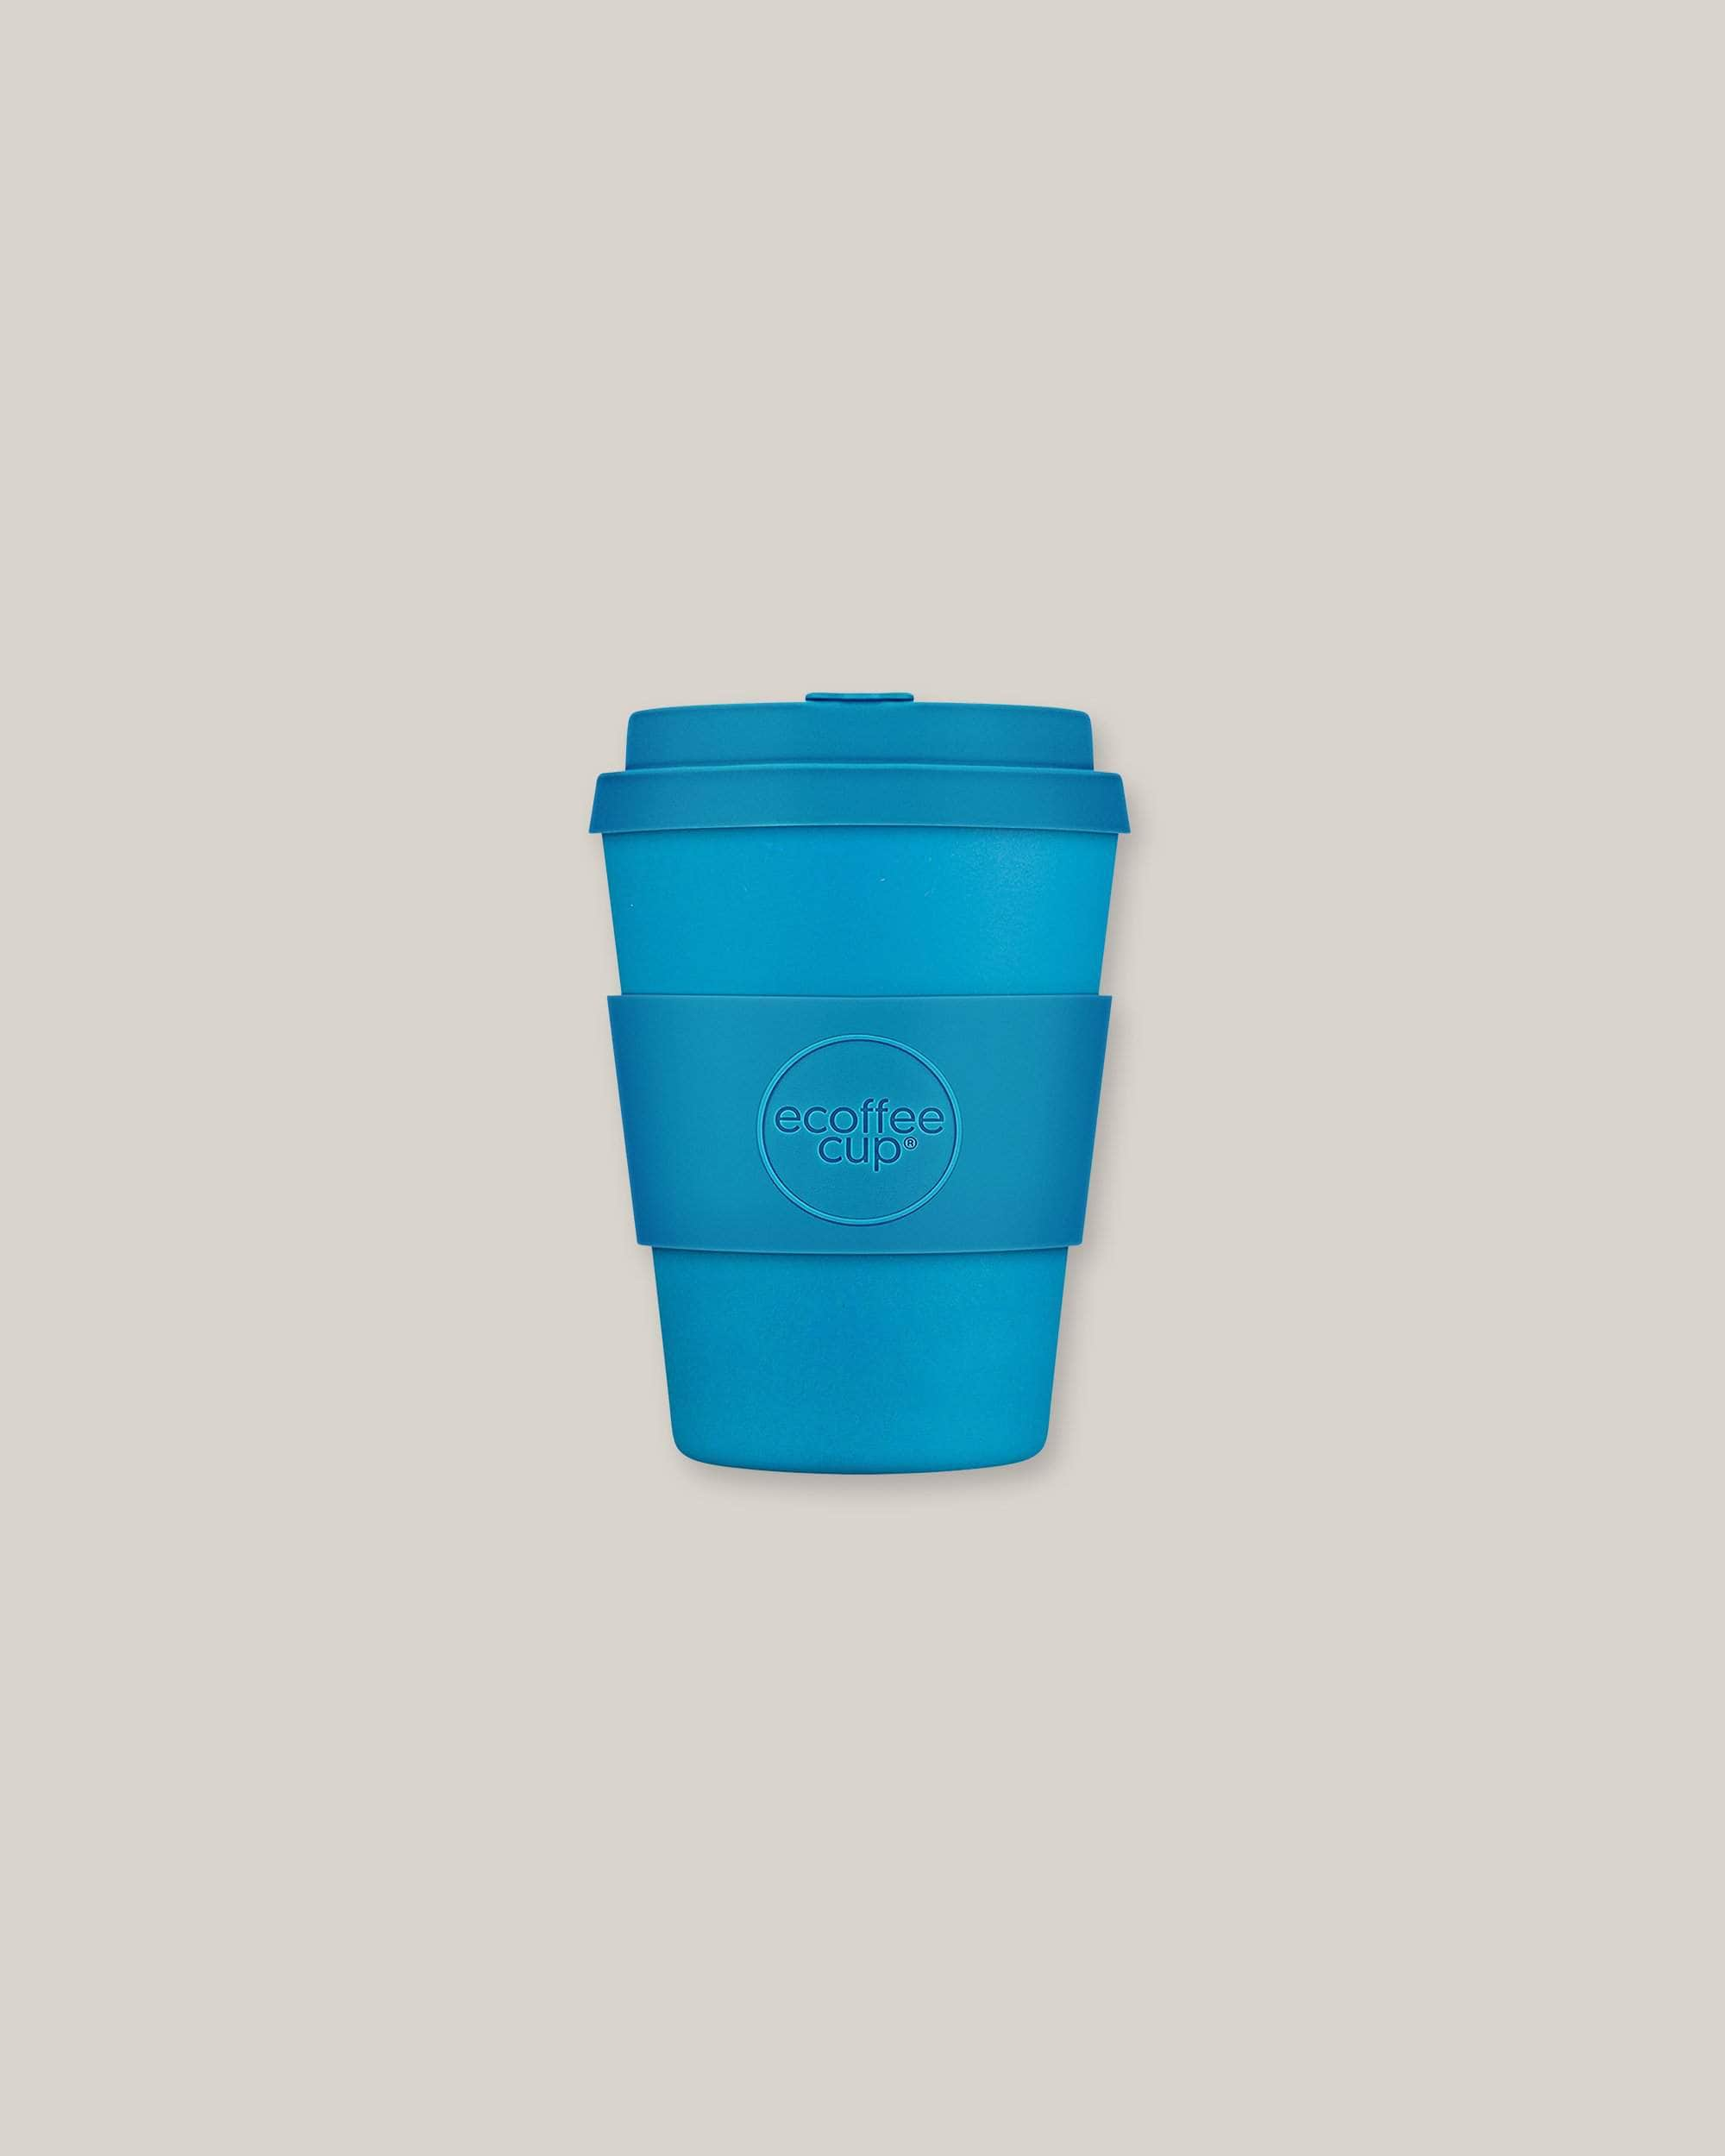 Ecoffee Cup. Bamboo Cups. Reusable Coffee Cups. Sustainable Coffee Cups. Coffee Cup 340 ml - Toroni